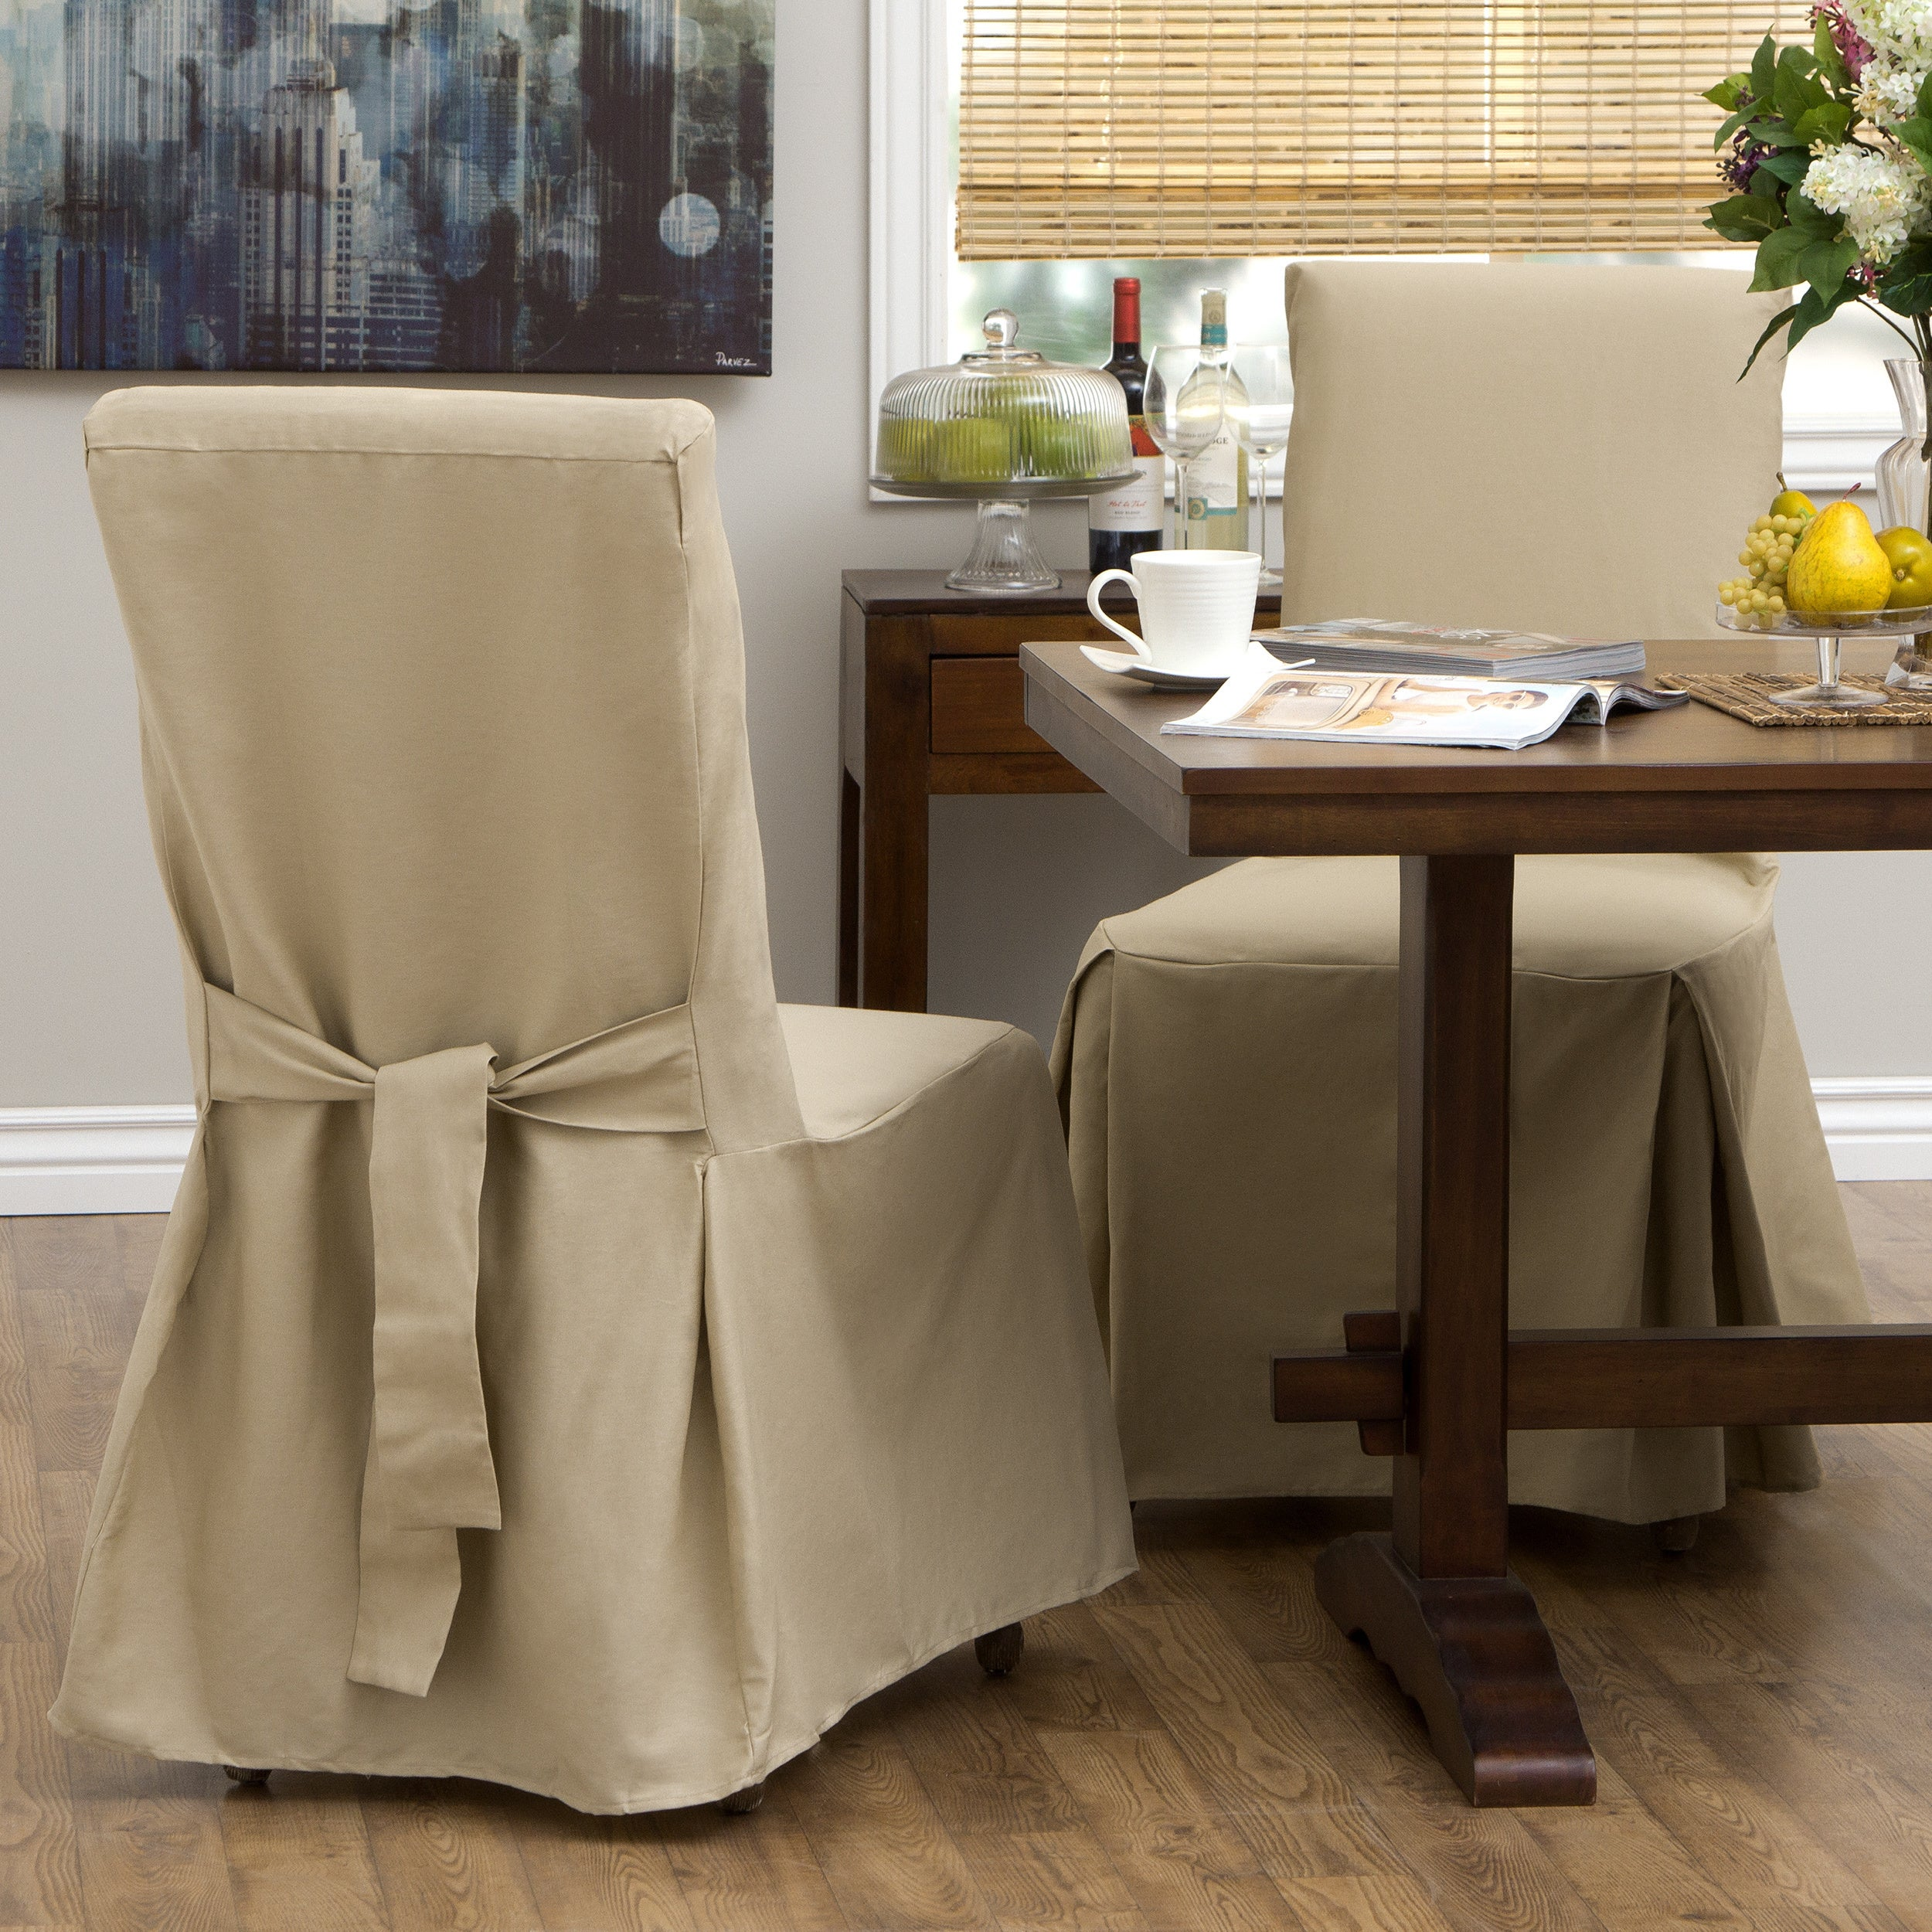 Classic Slipcovers Cotton Duck Parsons Chair Slipcover Pair On Sale Overstock 2442829